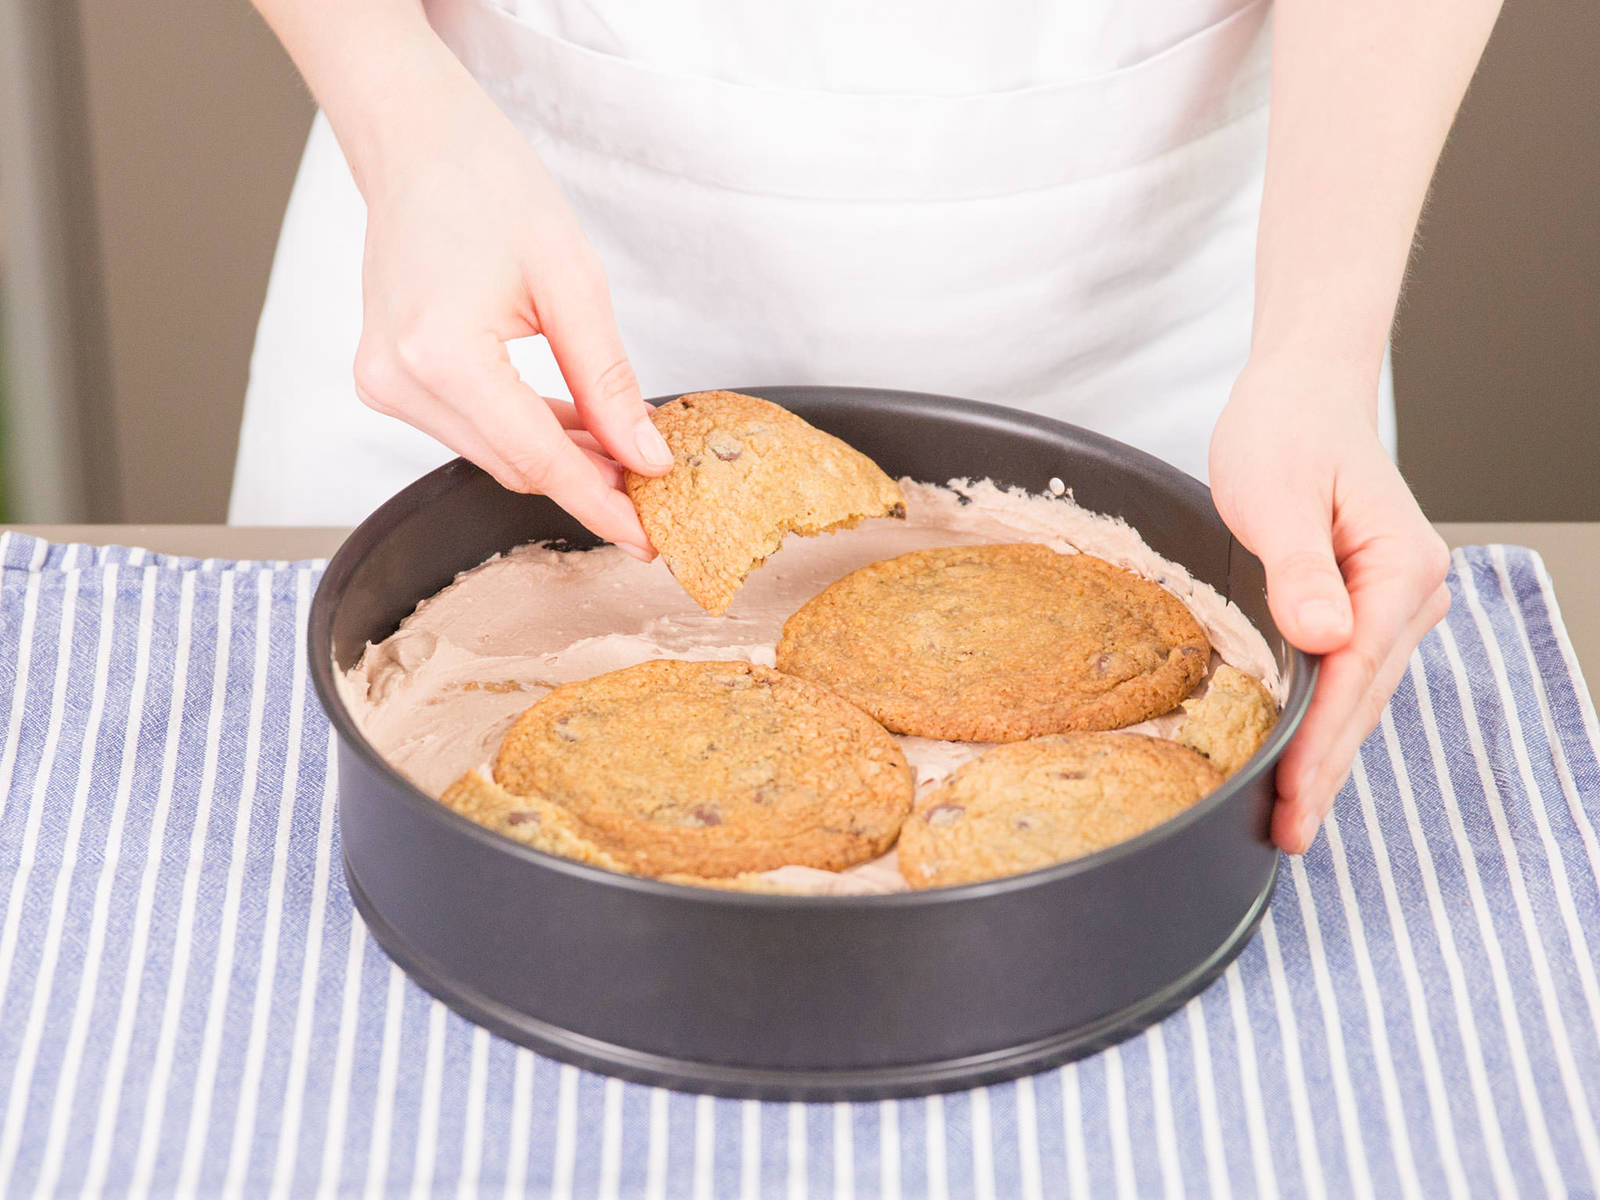 Spread a thin layer of whipped cream on the bottom of springform pan, then cover it with a layer of cookies, leaving as little space bare as possible. Break cookies into pieces to fill any gaps. Spread an even layer of whipped cream on top of cookies, then top with another layer of cookies. Continue this pattern until you nearly reach the top of the pan, then end with a layer of whipped cream. Cover cake with plastic wrap and refrigerate overnight. To serve, run a sharp knife along sides of the pan to loosen cake, then remove sides of the pan. Shave some chocolate on top of cake using a vegetable peeler for garnish before serving.